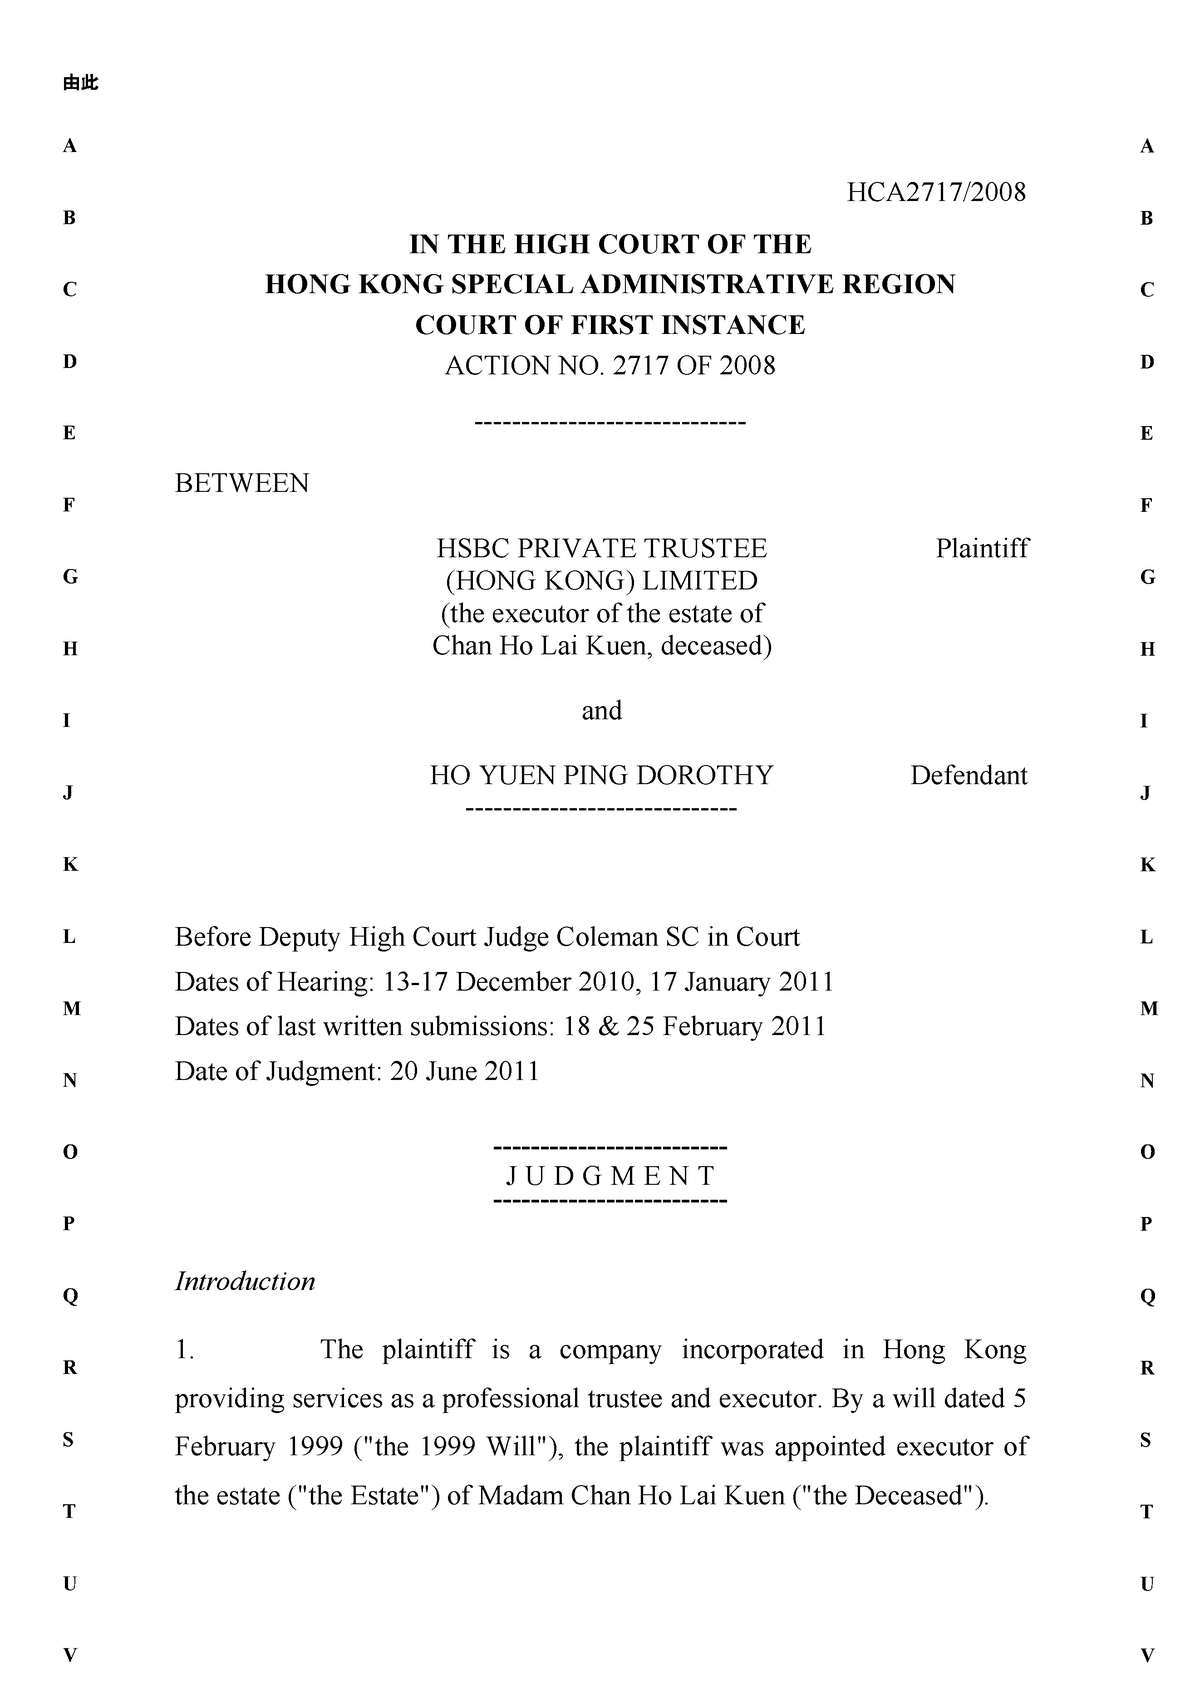 HSBC Private Trustee (HONG KONG) Limited (the executor of the estate